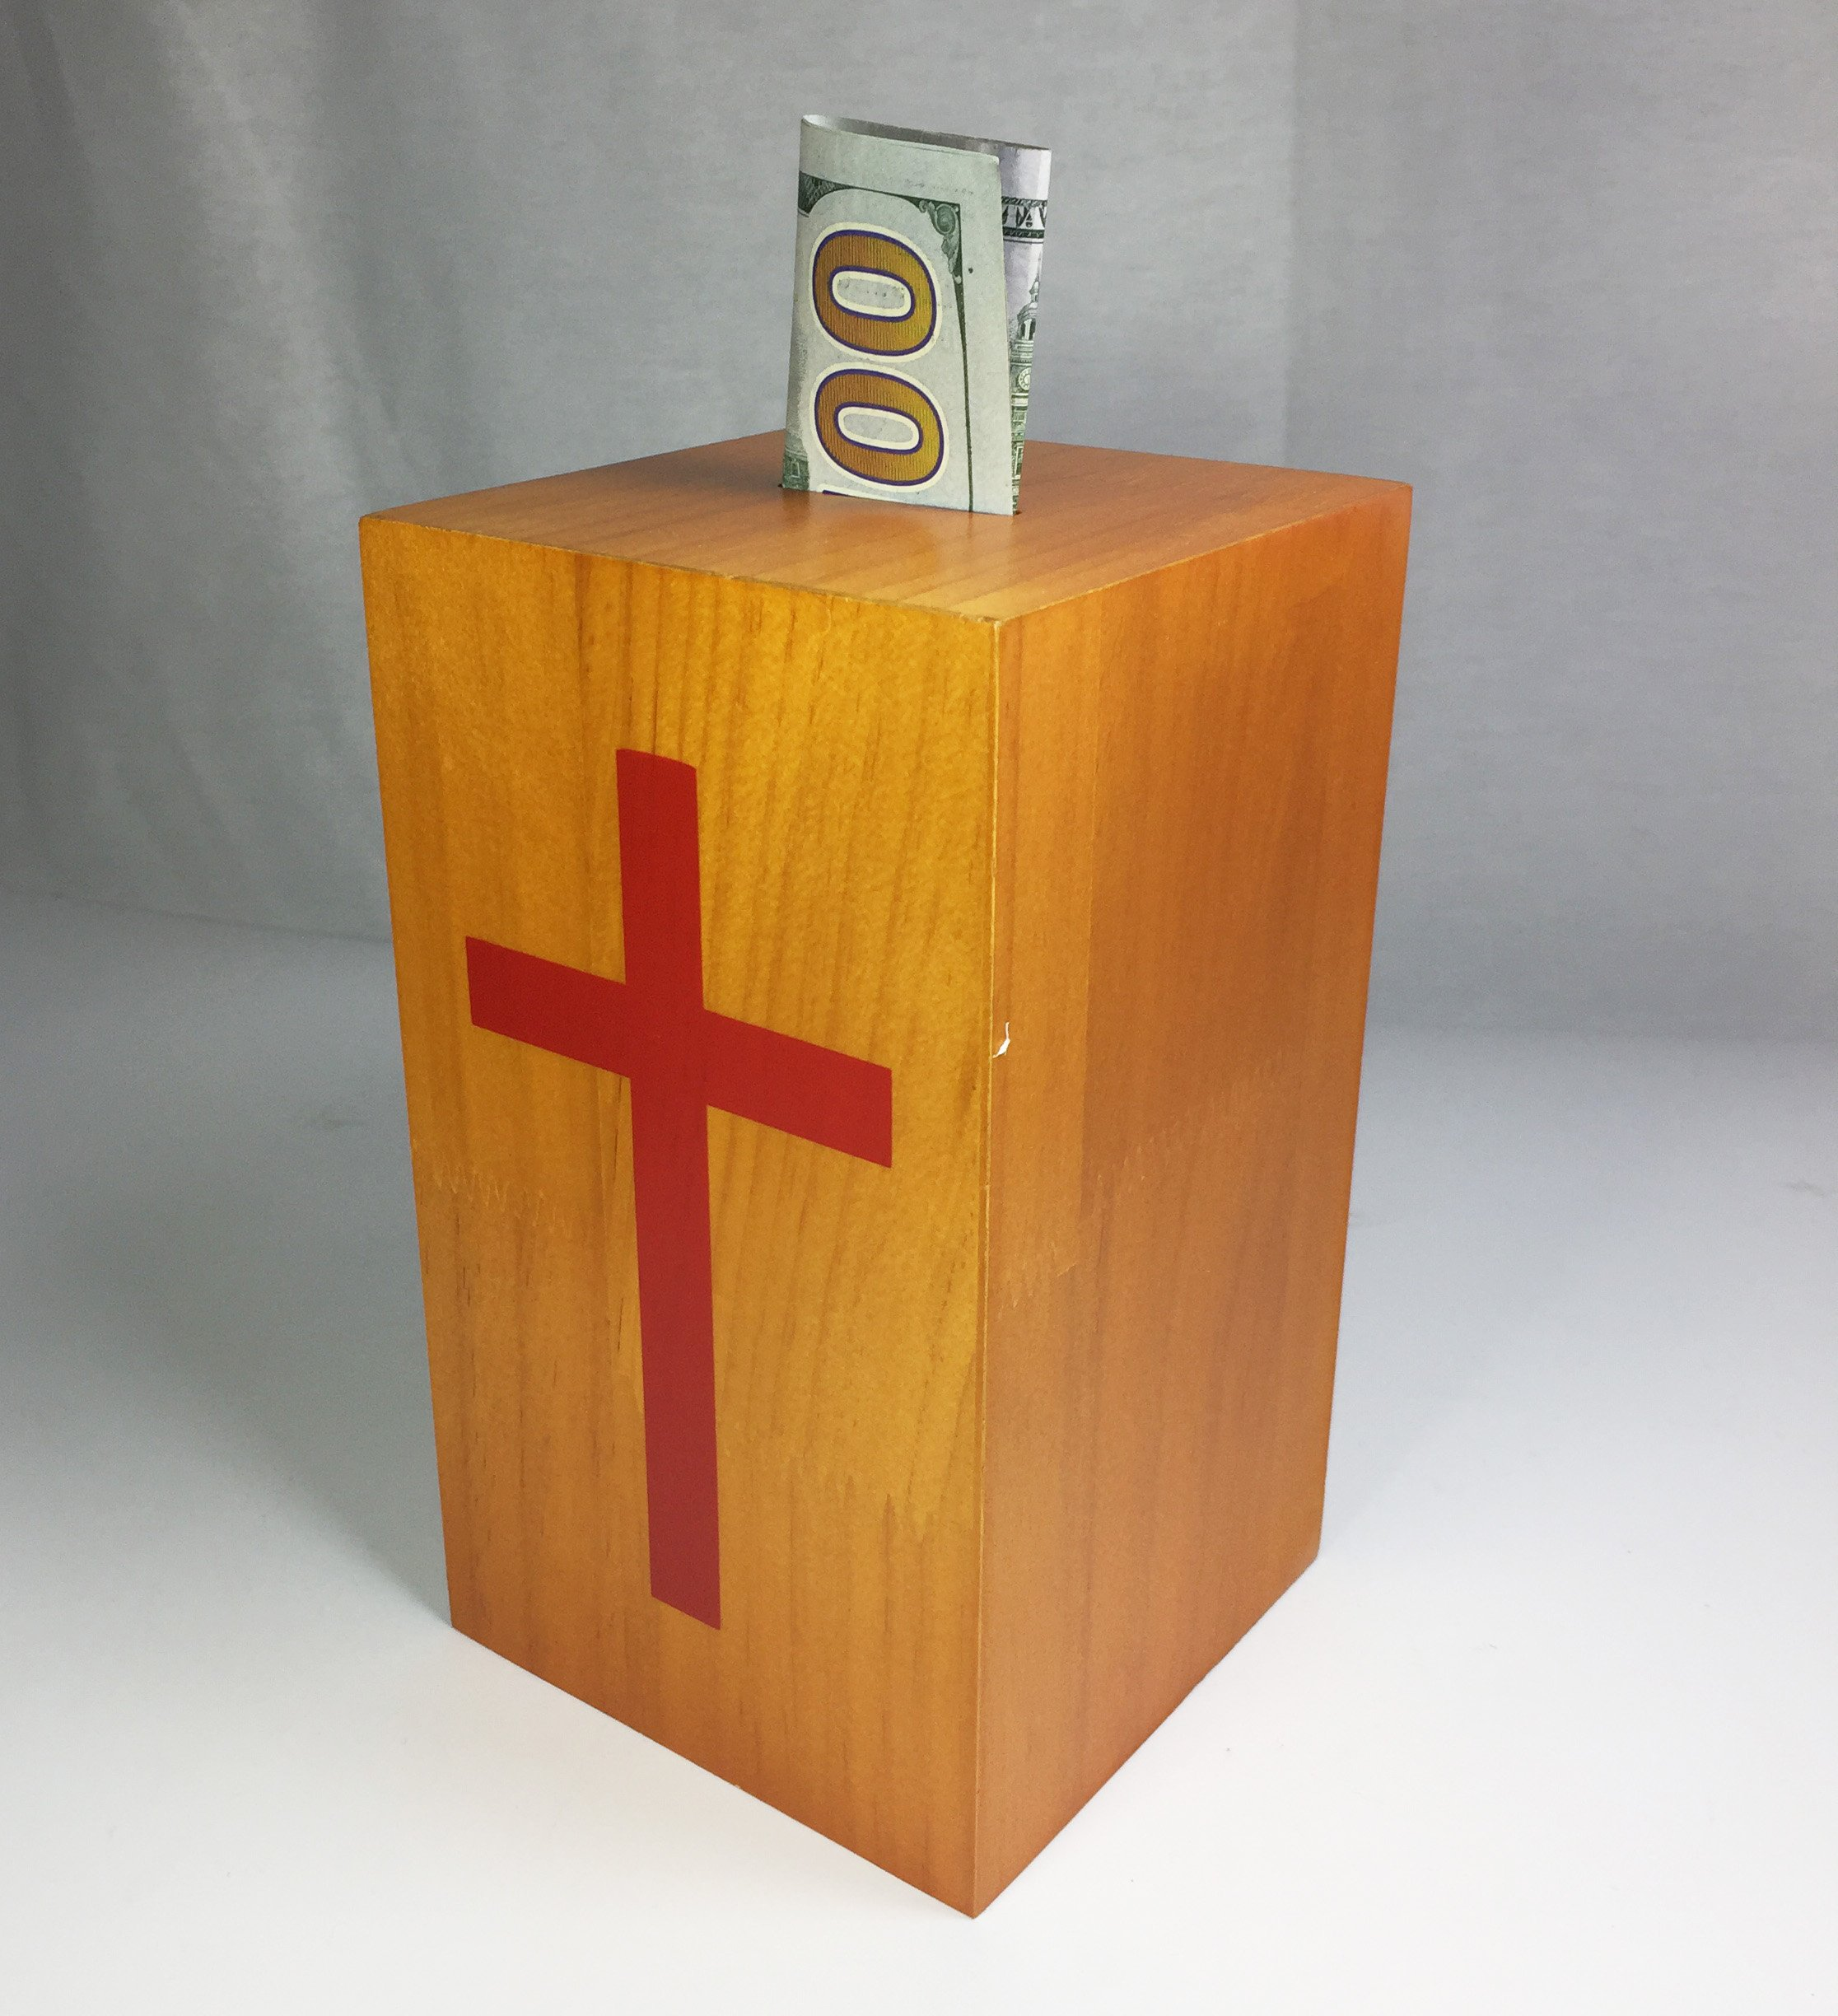 FixtureDisplays Wood Collection Donation Box Church Offering Coin Collection Fundraising Box 10886